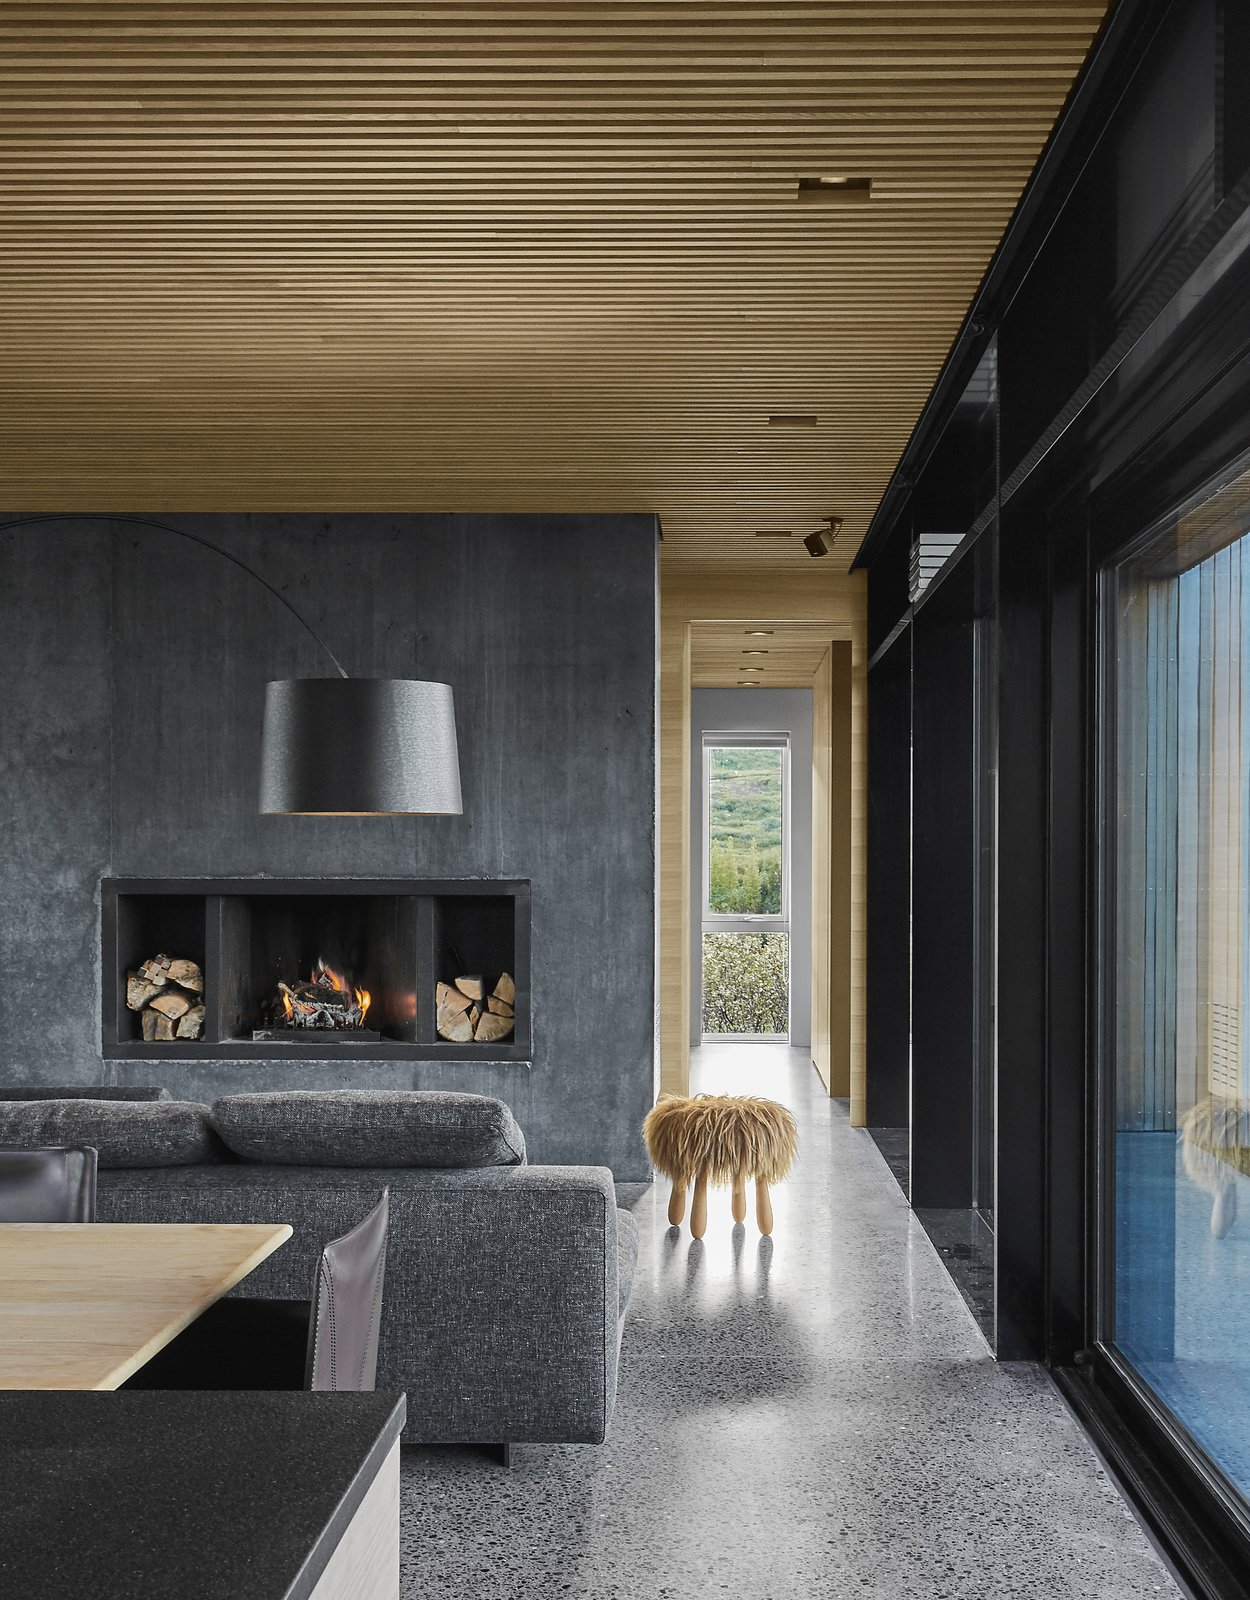 Living Room, Standard Layout Fireplace, Sectional, Chair, Wood Burning Fireplace, Table, Stools, Concrete Floor, Recessed Lighting, and Floor Lighting The minimalist material palette is picked up on the interiors as well, where a black concrete fireplace plays off the polished aggregate concrete floors.   Best Photos from A Timber-and-Concrete Summer House in Iceland Boasts Breathtaking Views